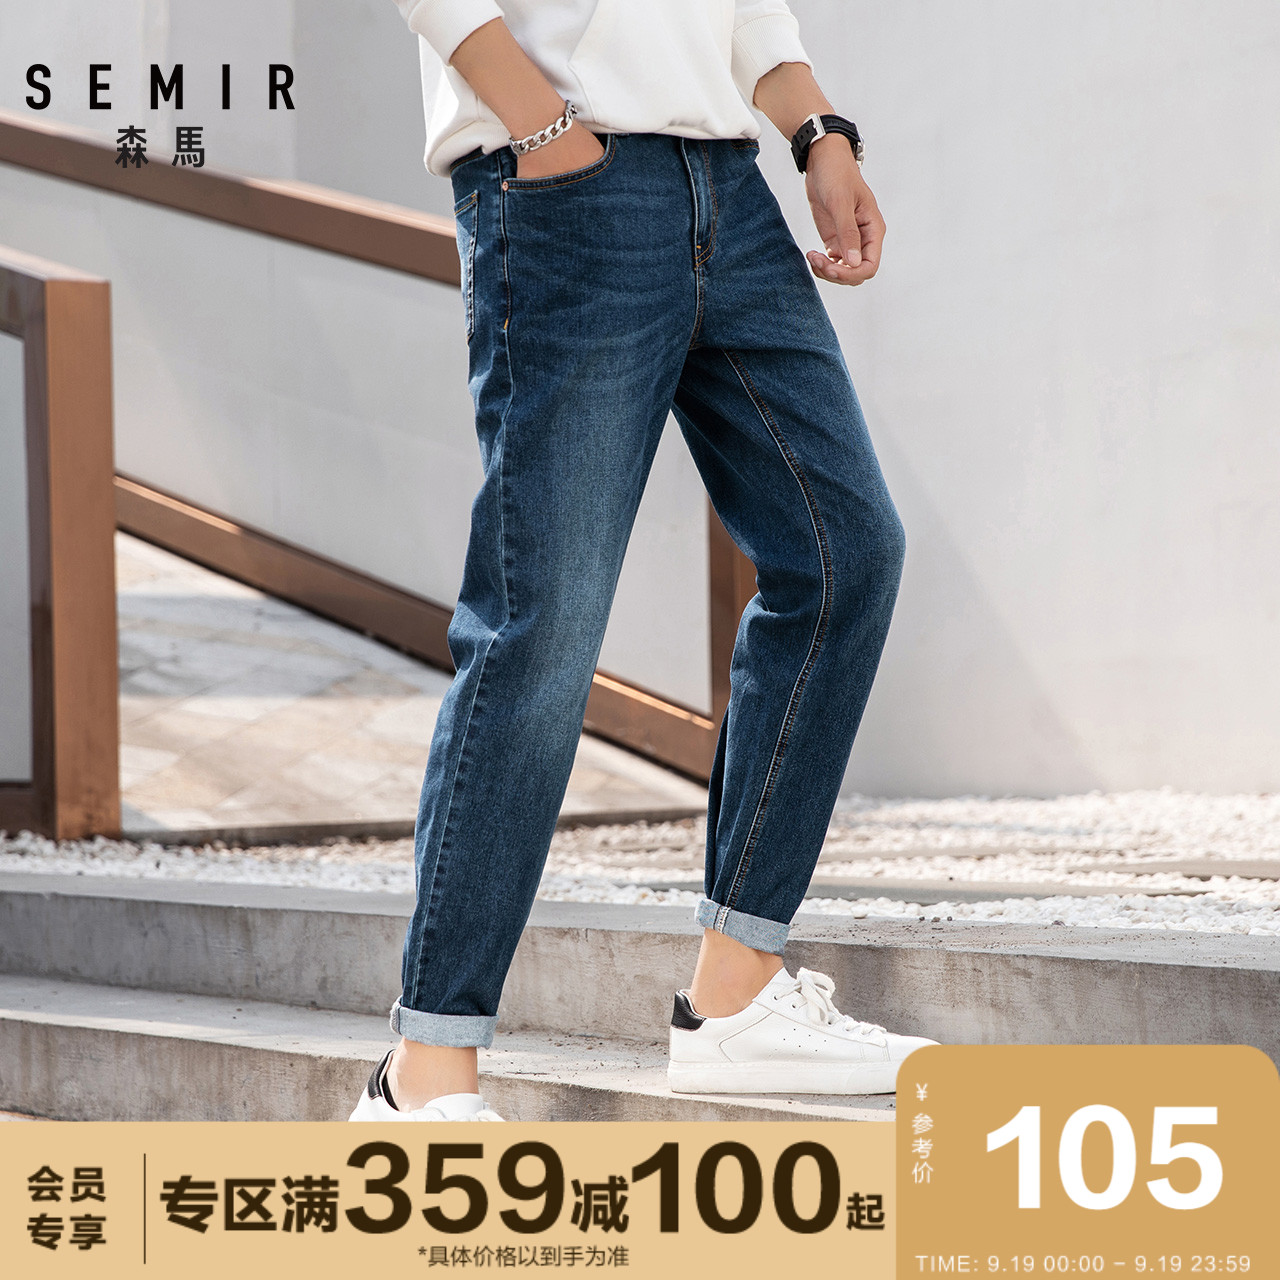 Semir jeans men's loose straight daddy pants trend autumn and winter stretch men's denim trousers boys pants